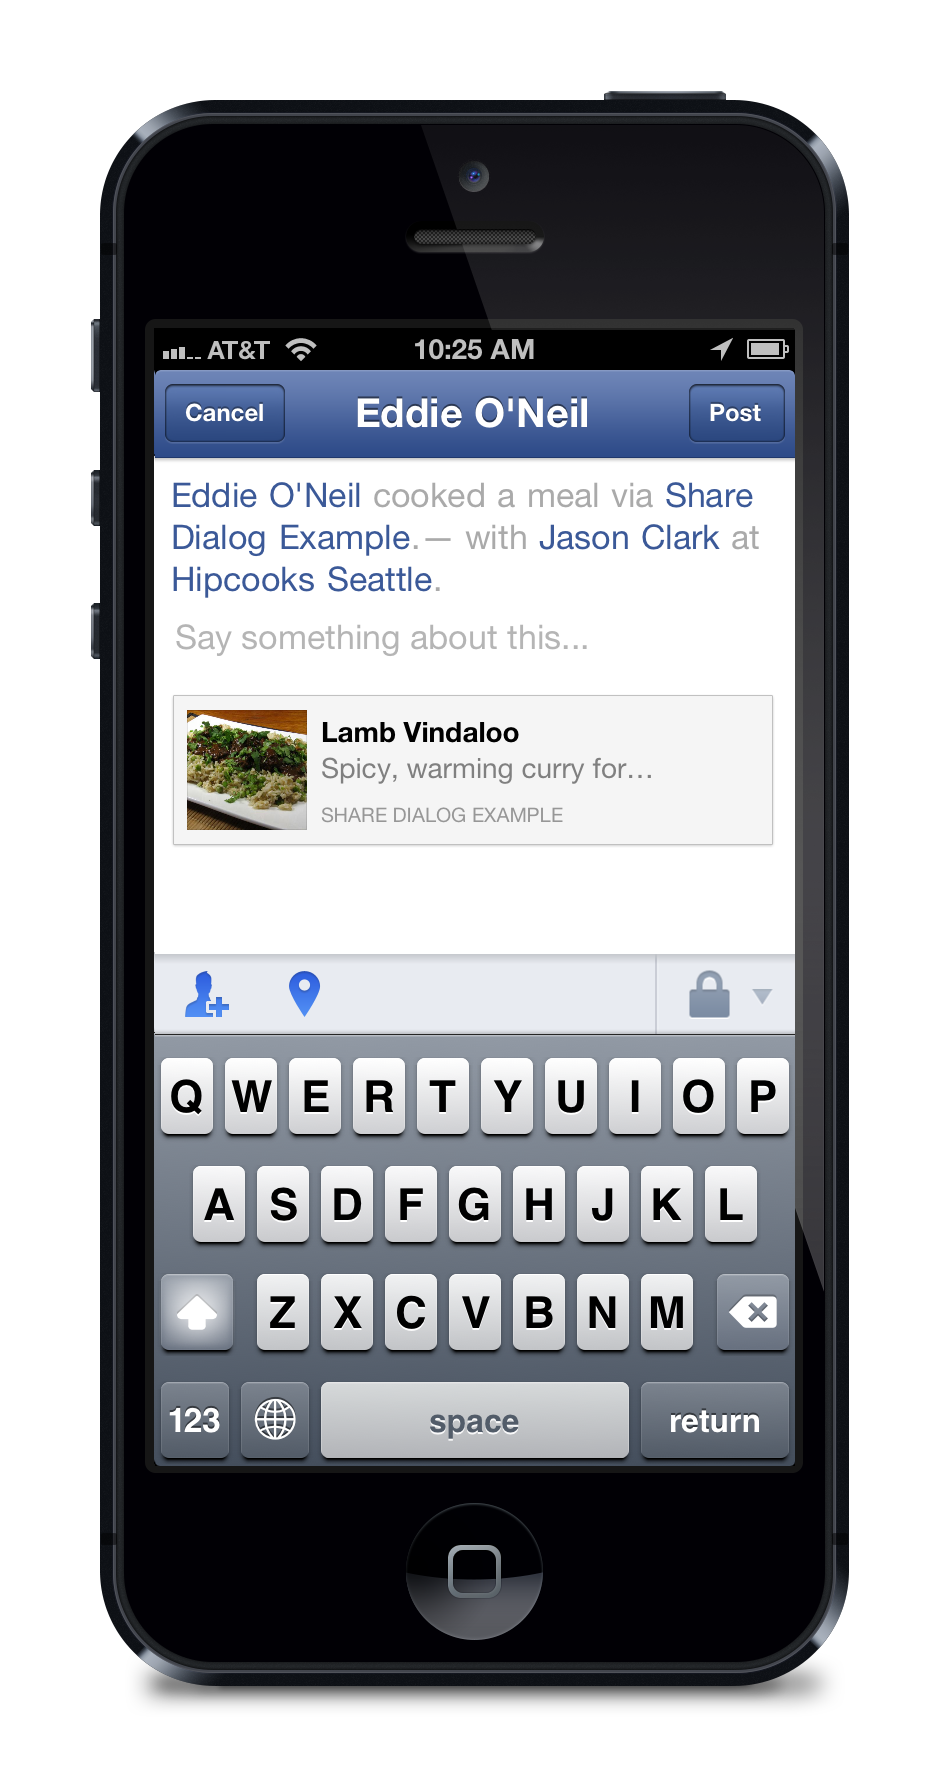 Facebook's New Share Dialog For iOS Features Streamlined App Activity Sharing